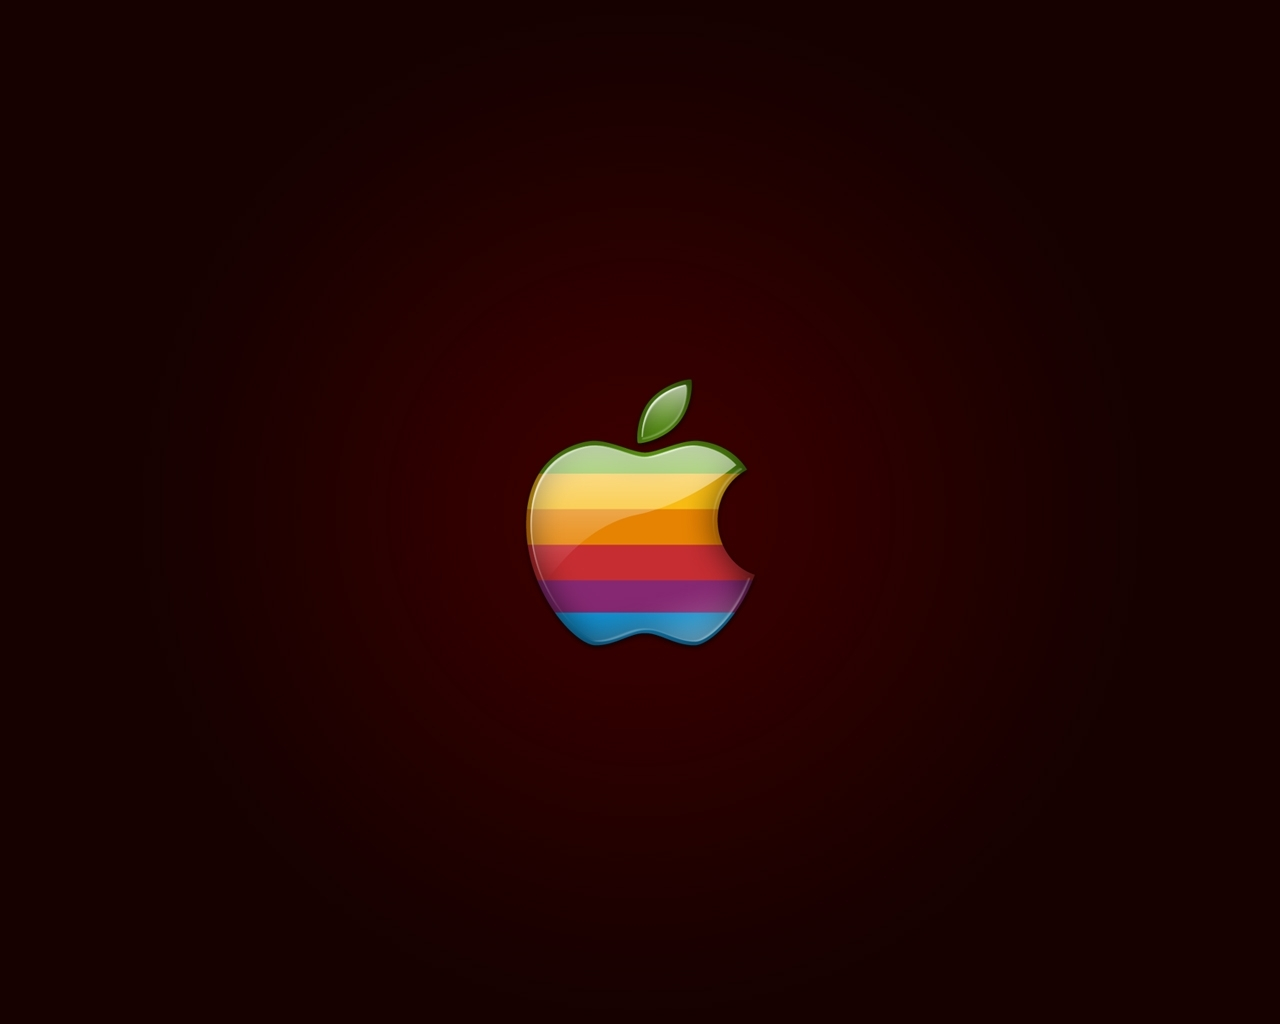 apple rainbow logo wallpaper | wallpaper wide hd